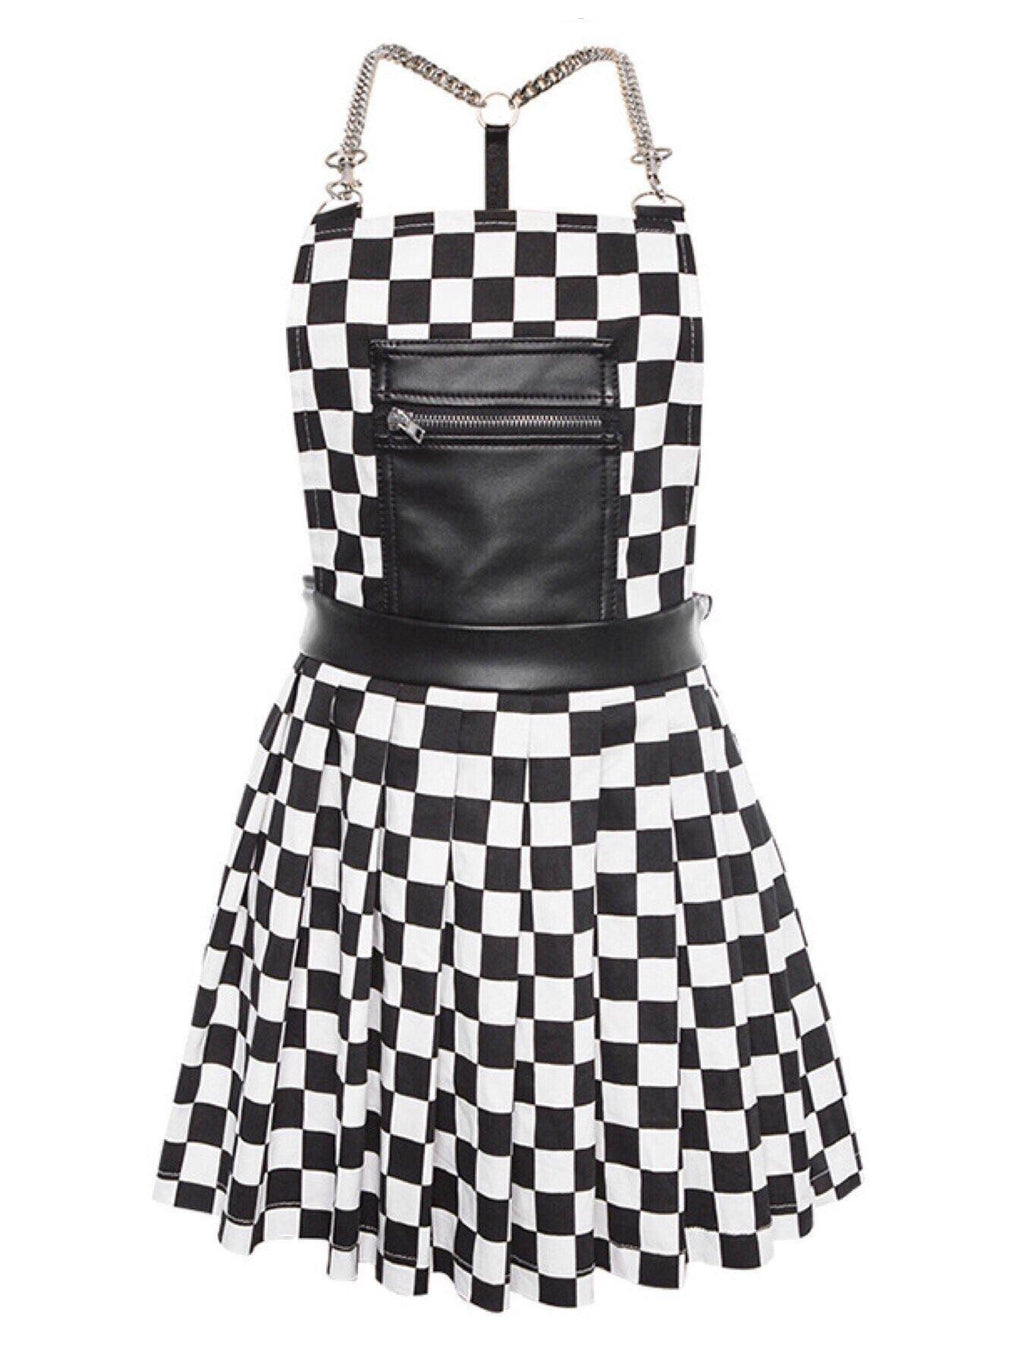 BlissGirl - Black and White Checkered Romper - - Harajuku - Kawaii - Alternative - Fashion